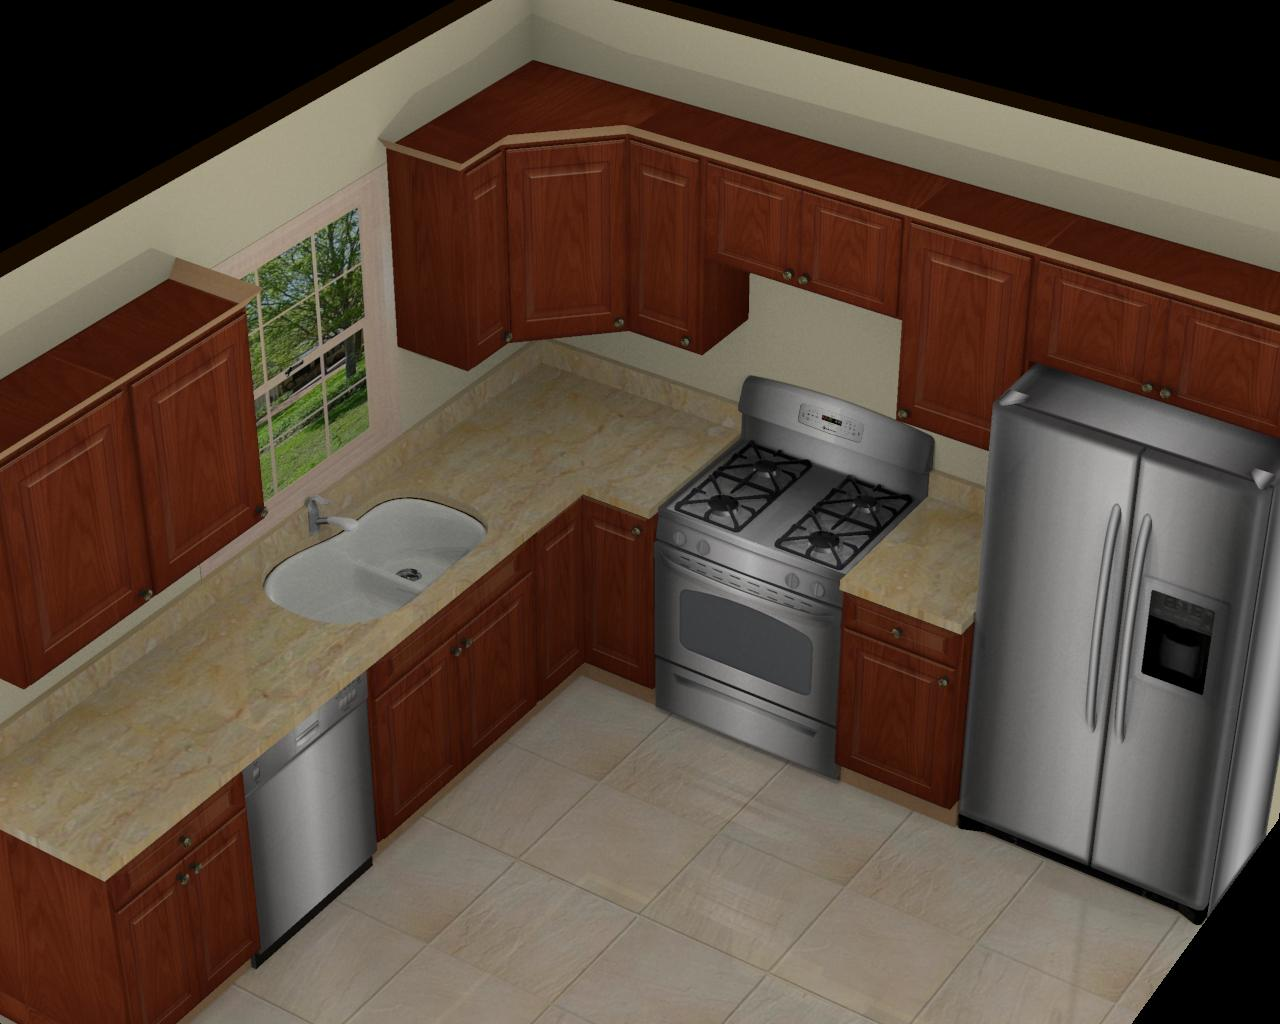 design your kitchen in 3d foundation dezin amp decor 3d kitchen model design 282